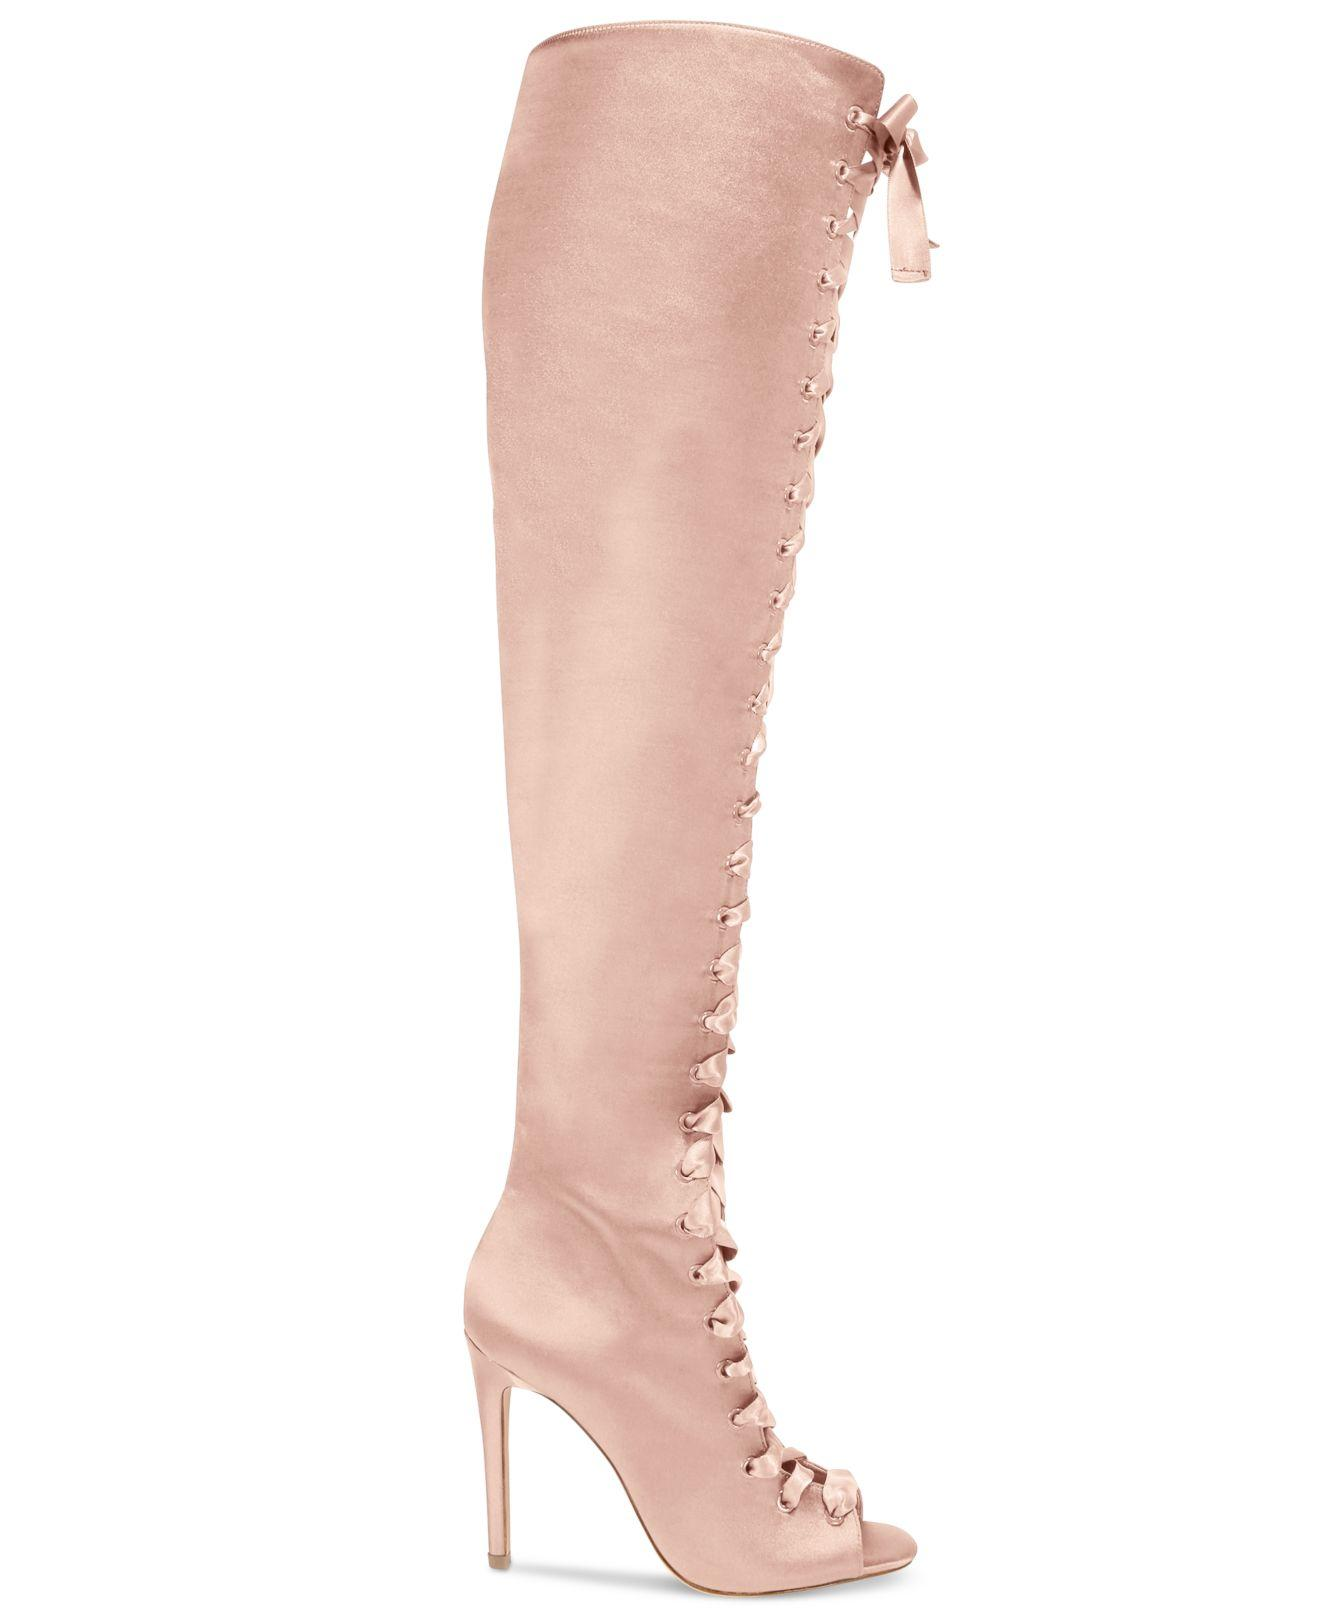 0def8f6cabc Lyst - ALDO Cherisse Lace-up Over-the-knee Boots in Pink